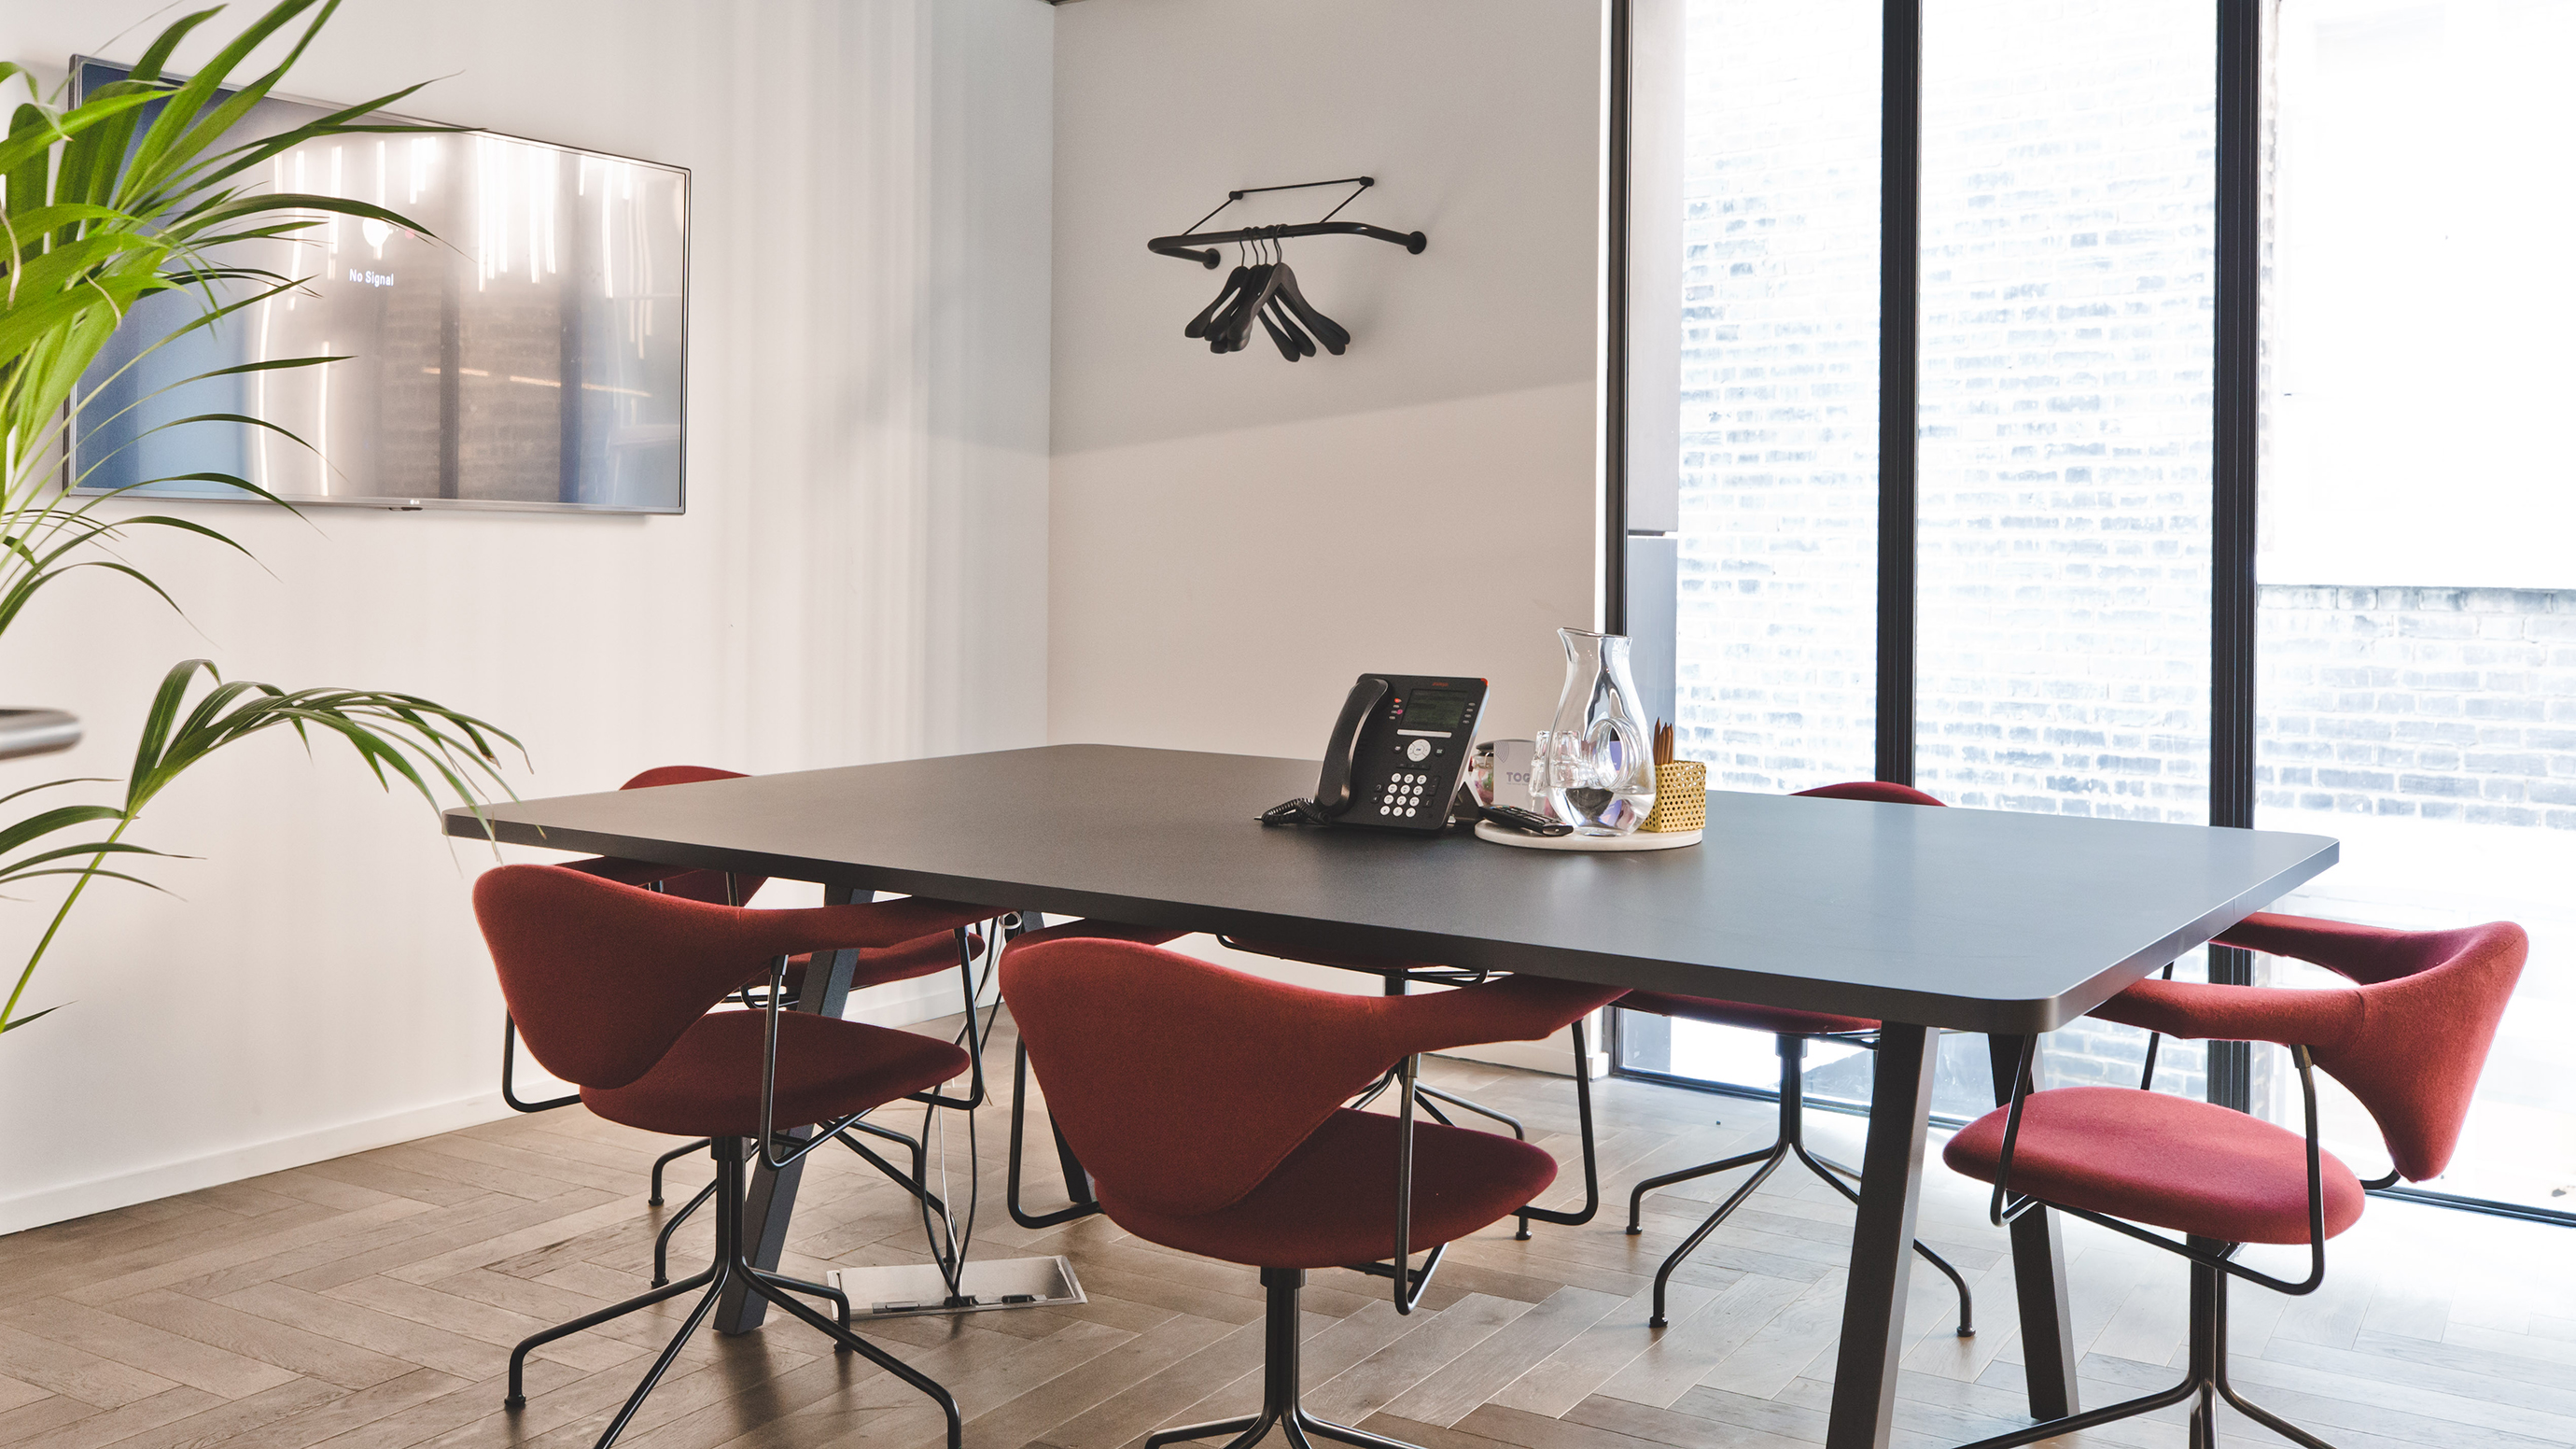 Small meeting room with dark rectangular table and red chairs and large windows at TOG building The Stanley Building London